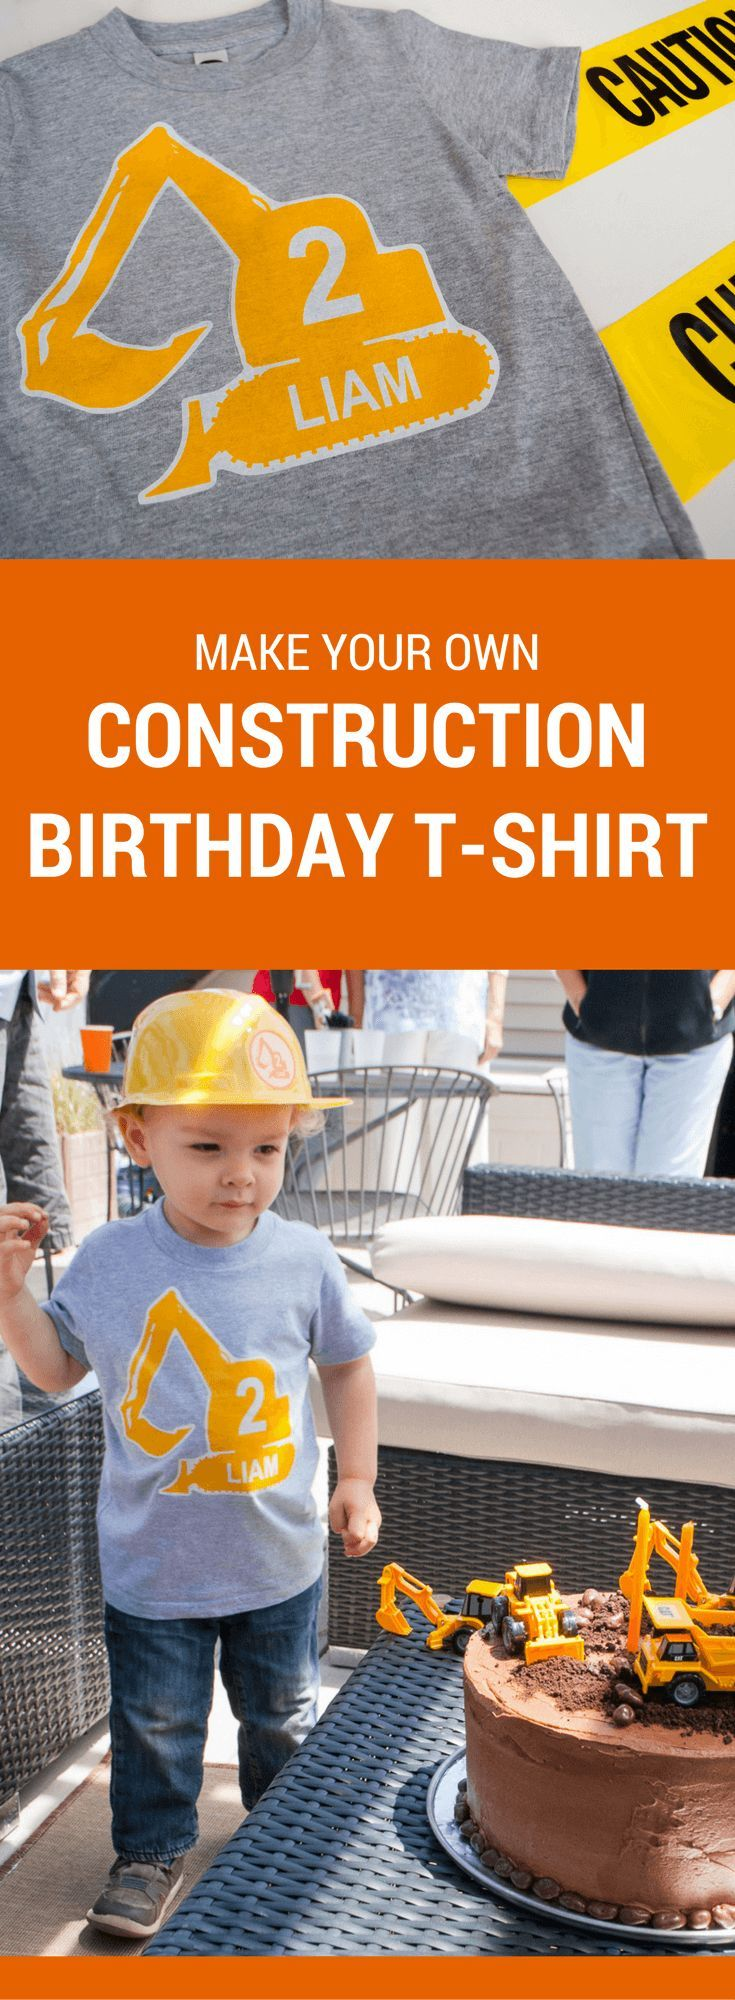 Make a DIY personalized construction birthday t-shirt for a modern construction birthday party. Just type to personalize, print, iron-on, and wear!